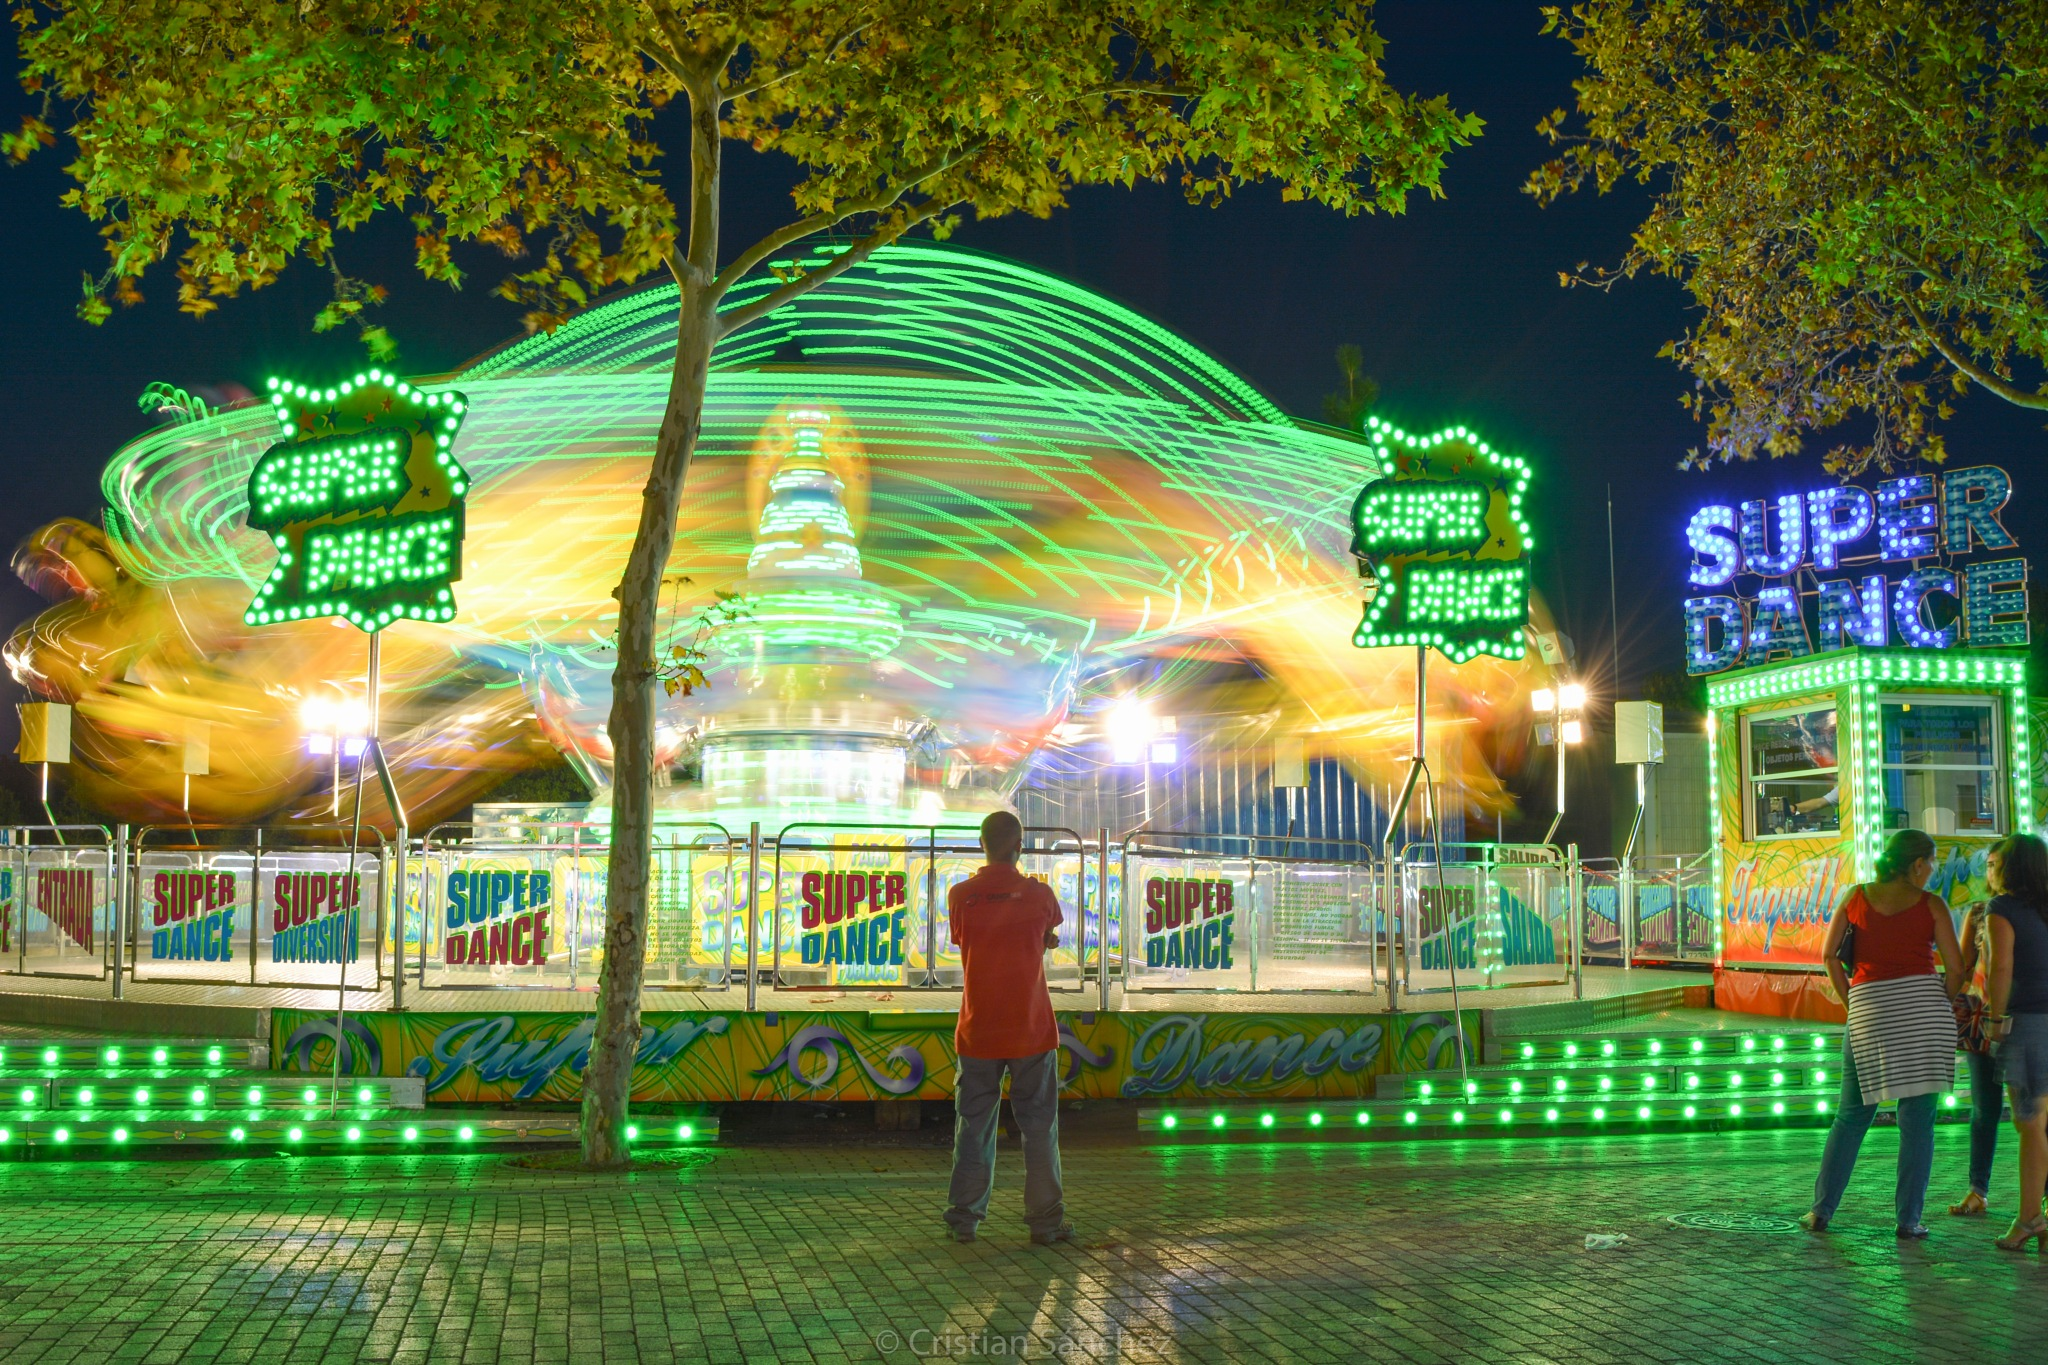 Fusion of lights at the fair. by cristianphotography